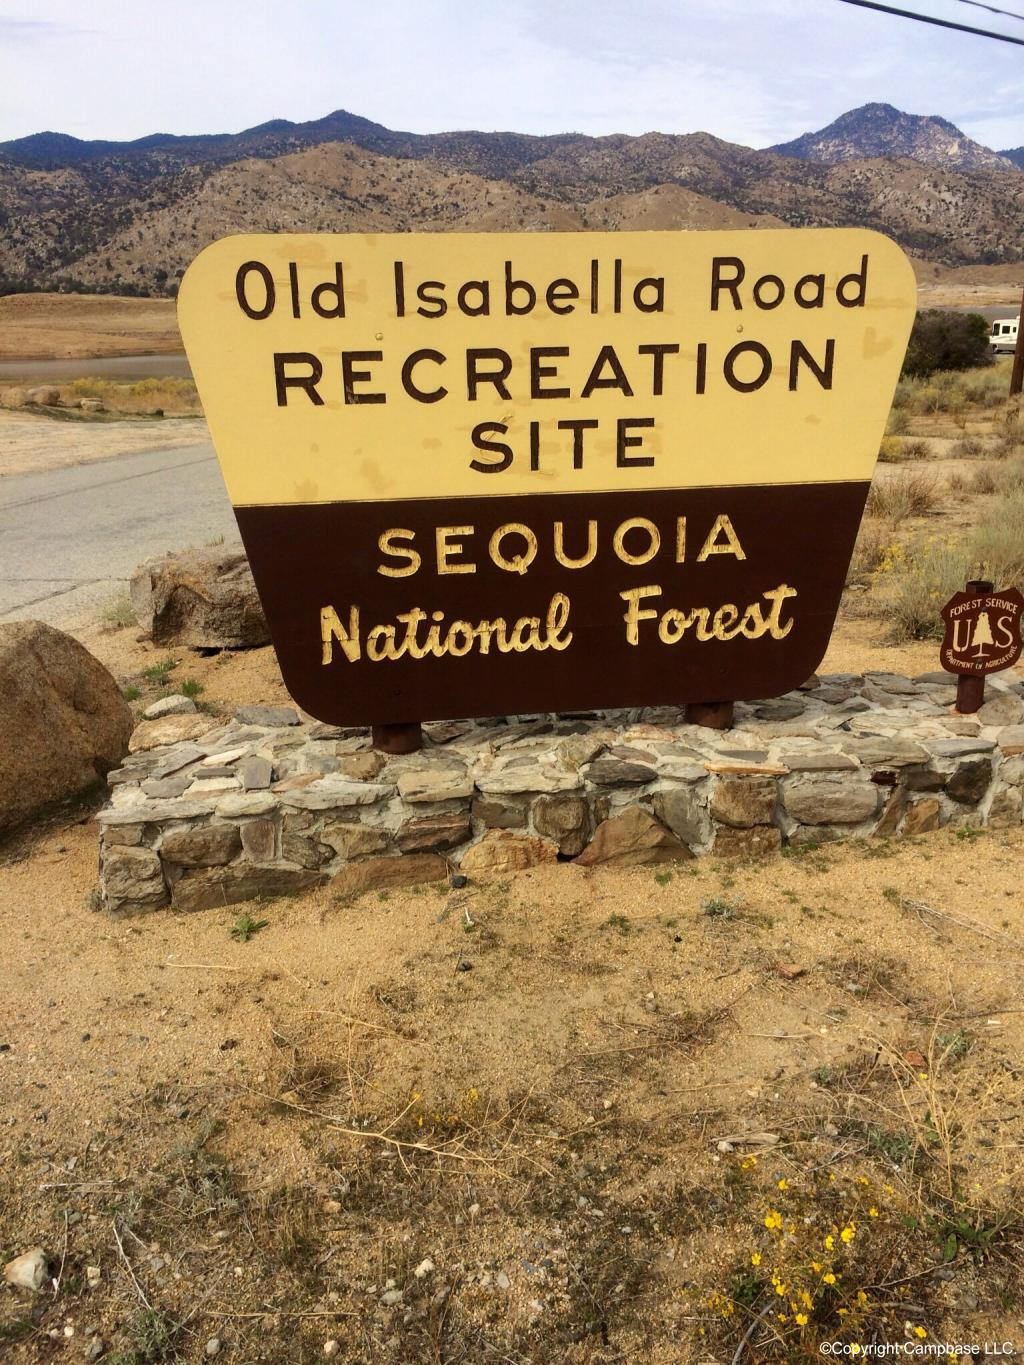 lake isabella chat sites Search the world's information, including webpages, images, videos and more google has many special features to help you find exactly what you're looking for.